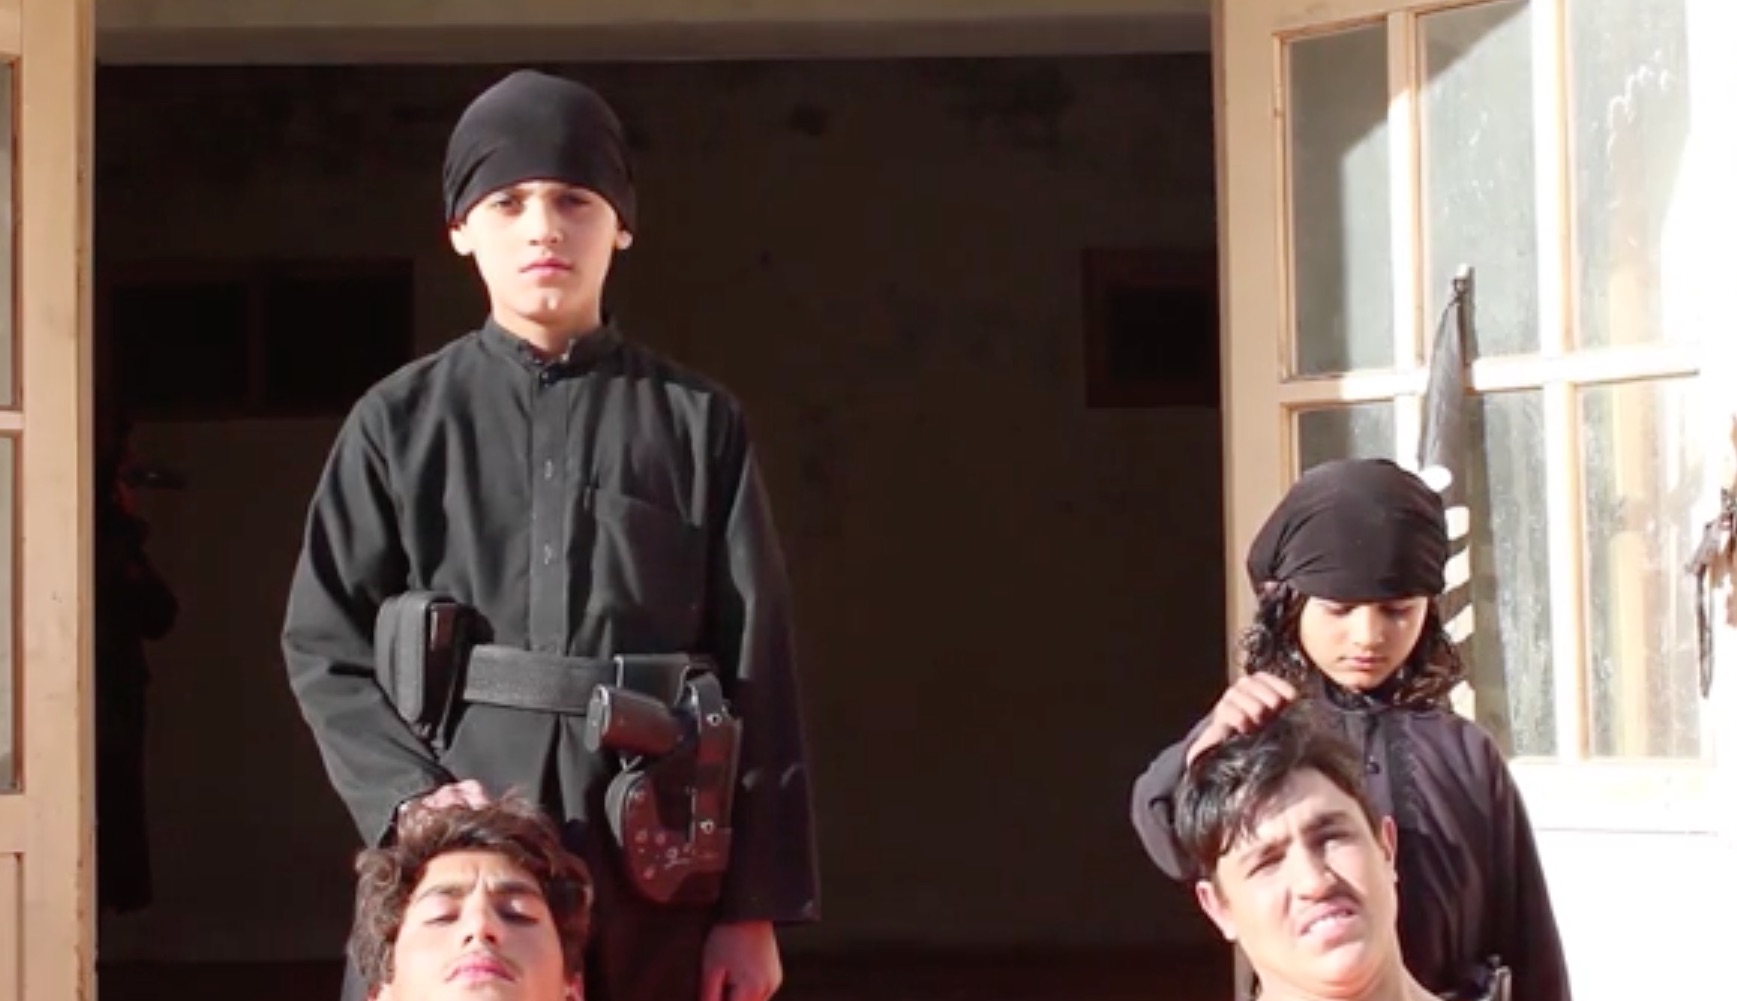 Two child members of ISIS are shown in the video preparing for executions. ISIS elements kidnap or recruit children through brute force and fear with the intention of brainwashing and training them to carry out executions, suicide bombing and other terrorist acts, observers say. [FILE]